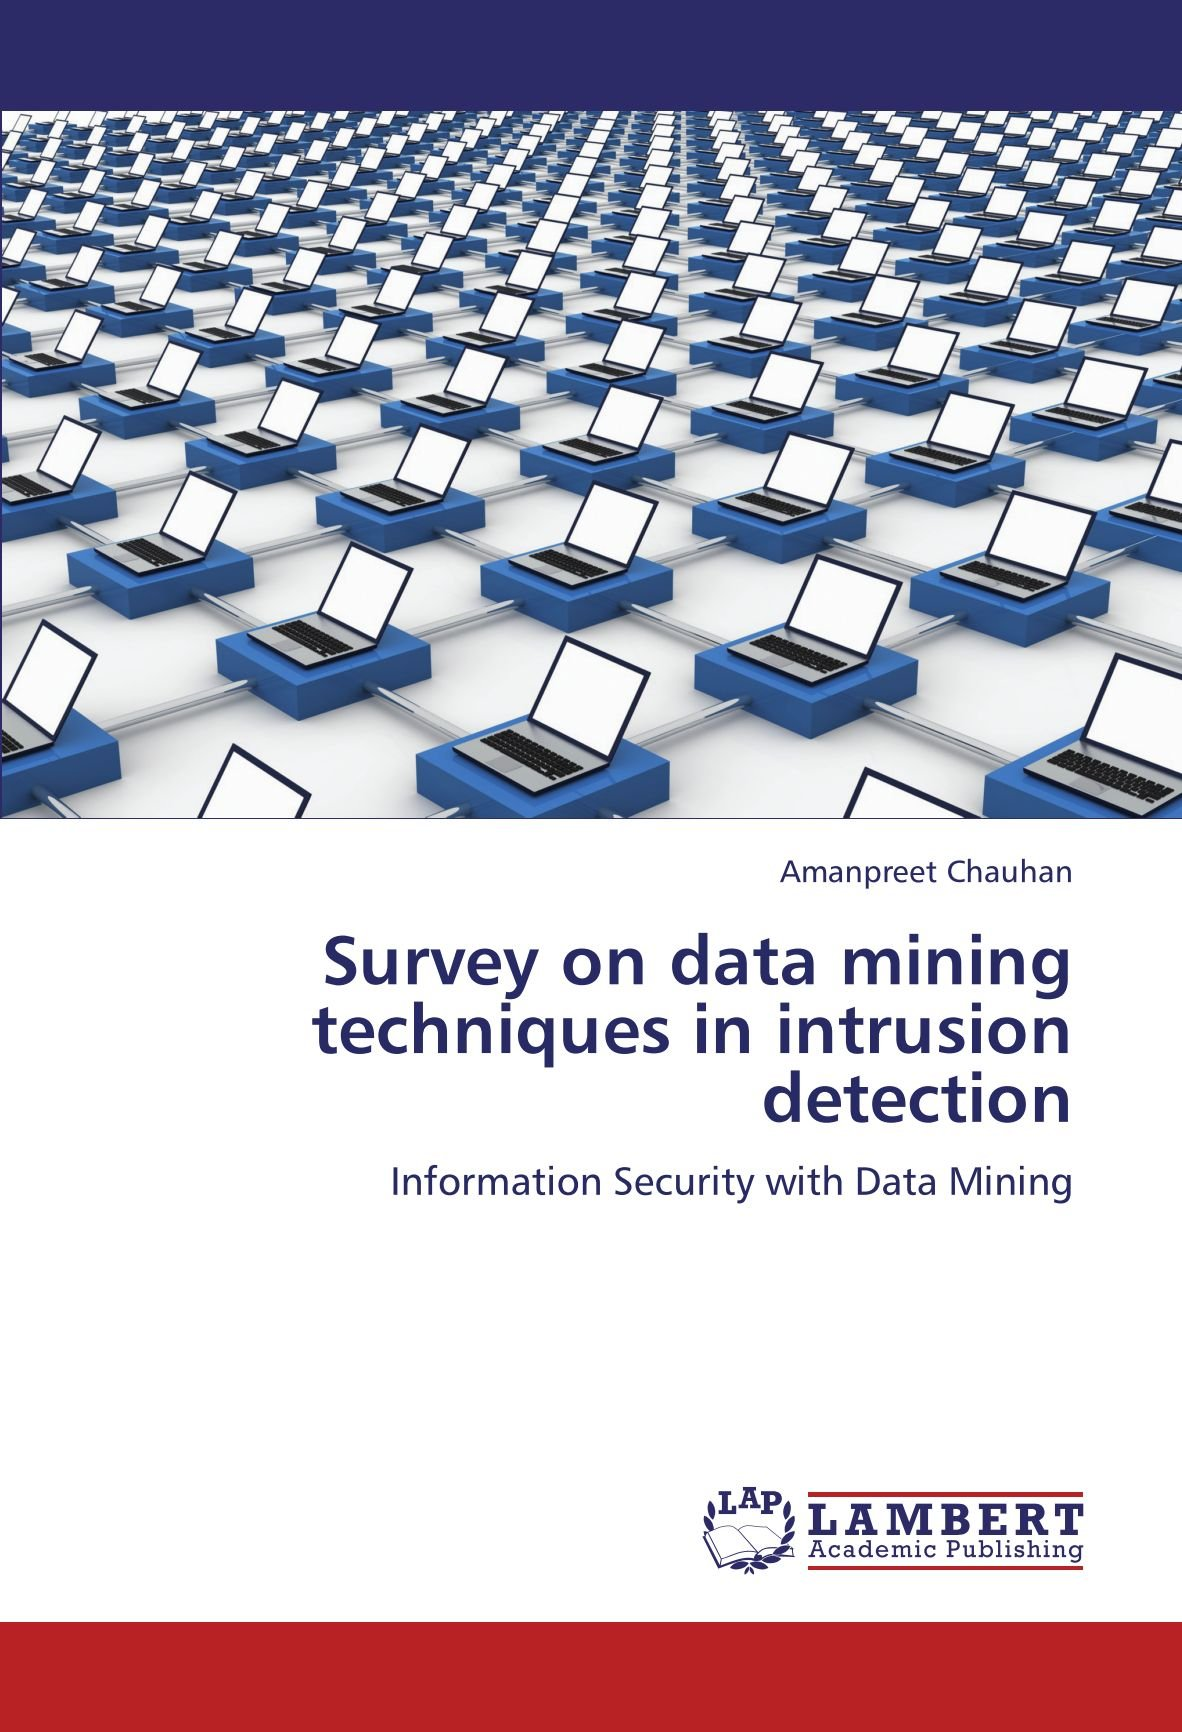 Survey on data mining techniques in intrusion detection: Information Security with Data Mining ePub fb2 book